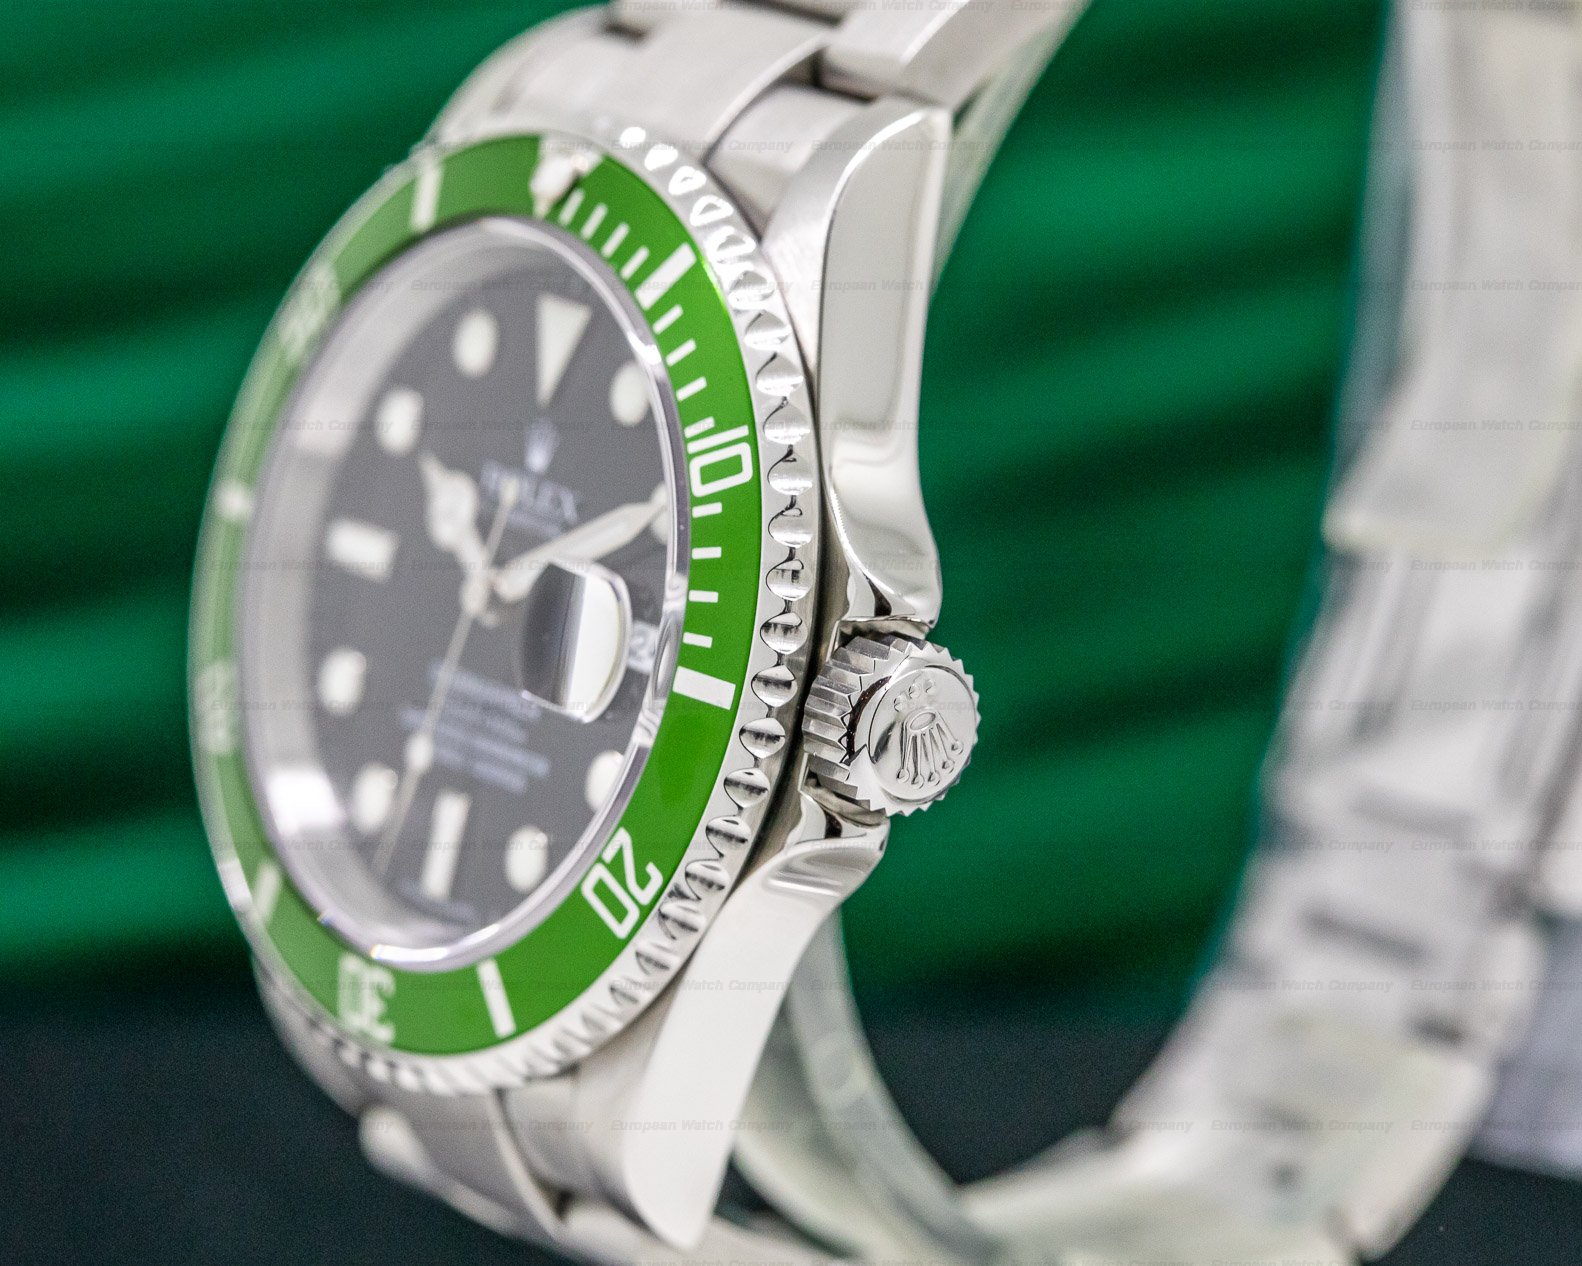 Rolex 16610LV Submariner 50th Anniversary SS Green Bezel